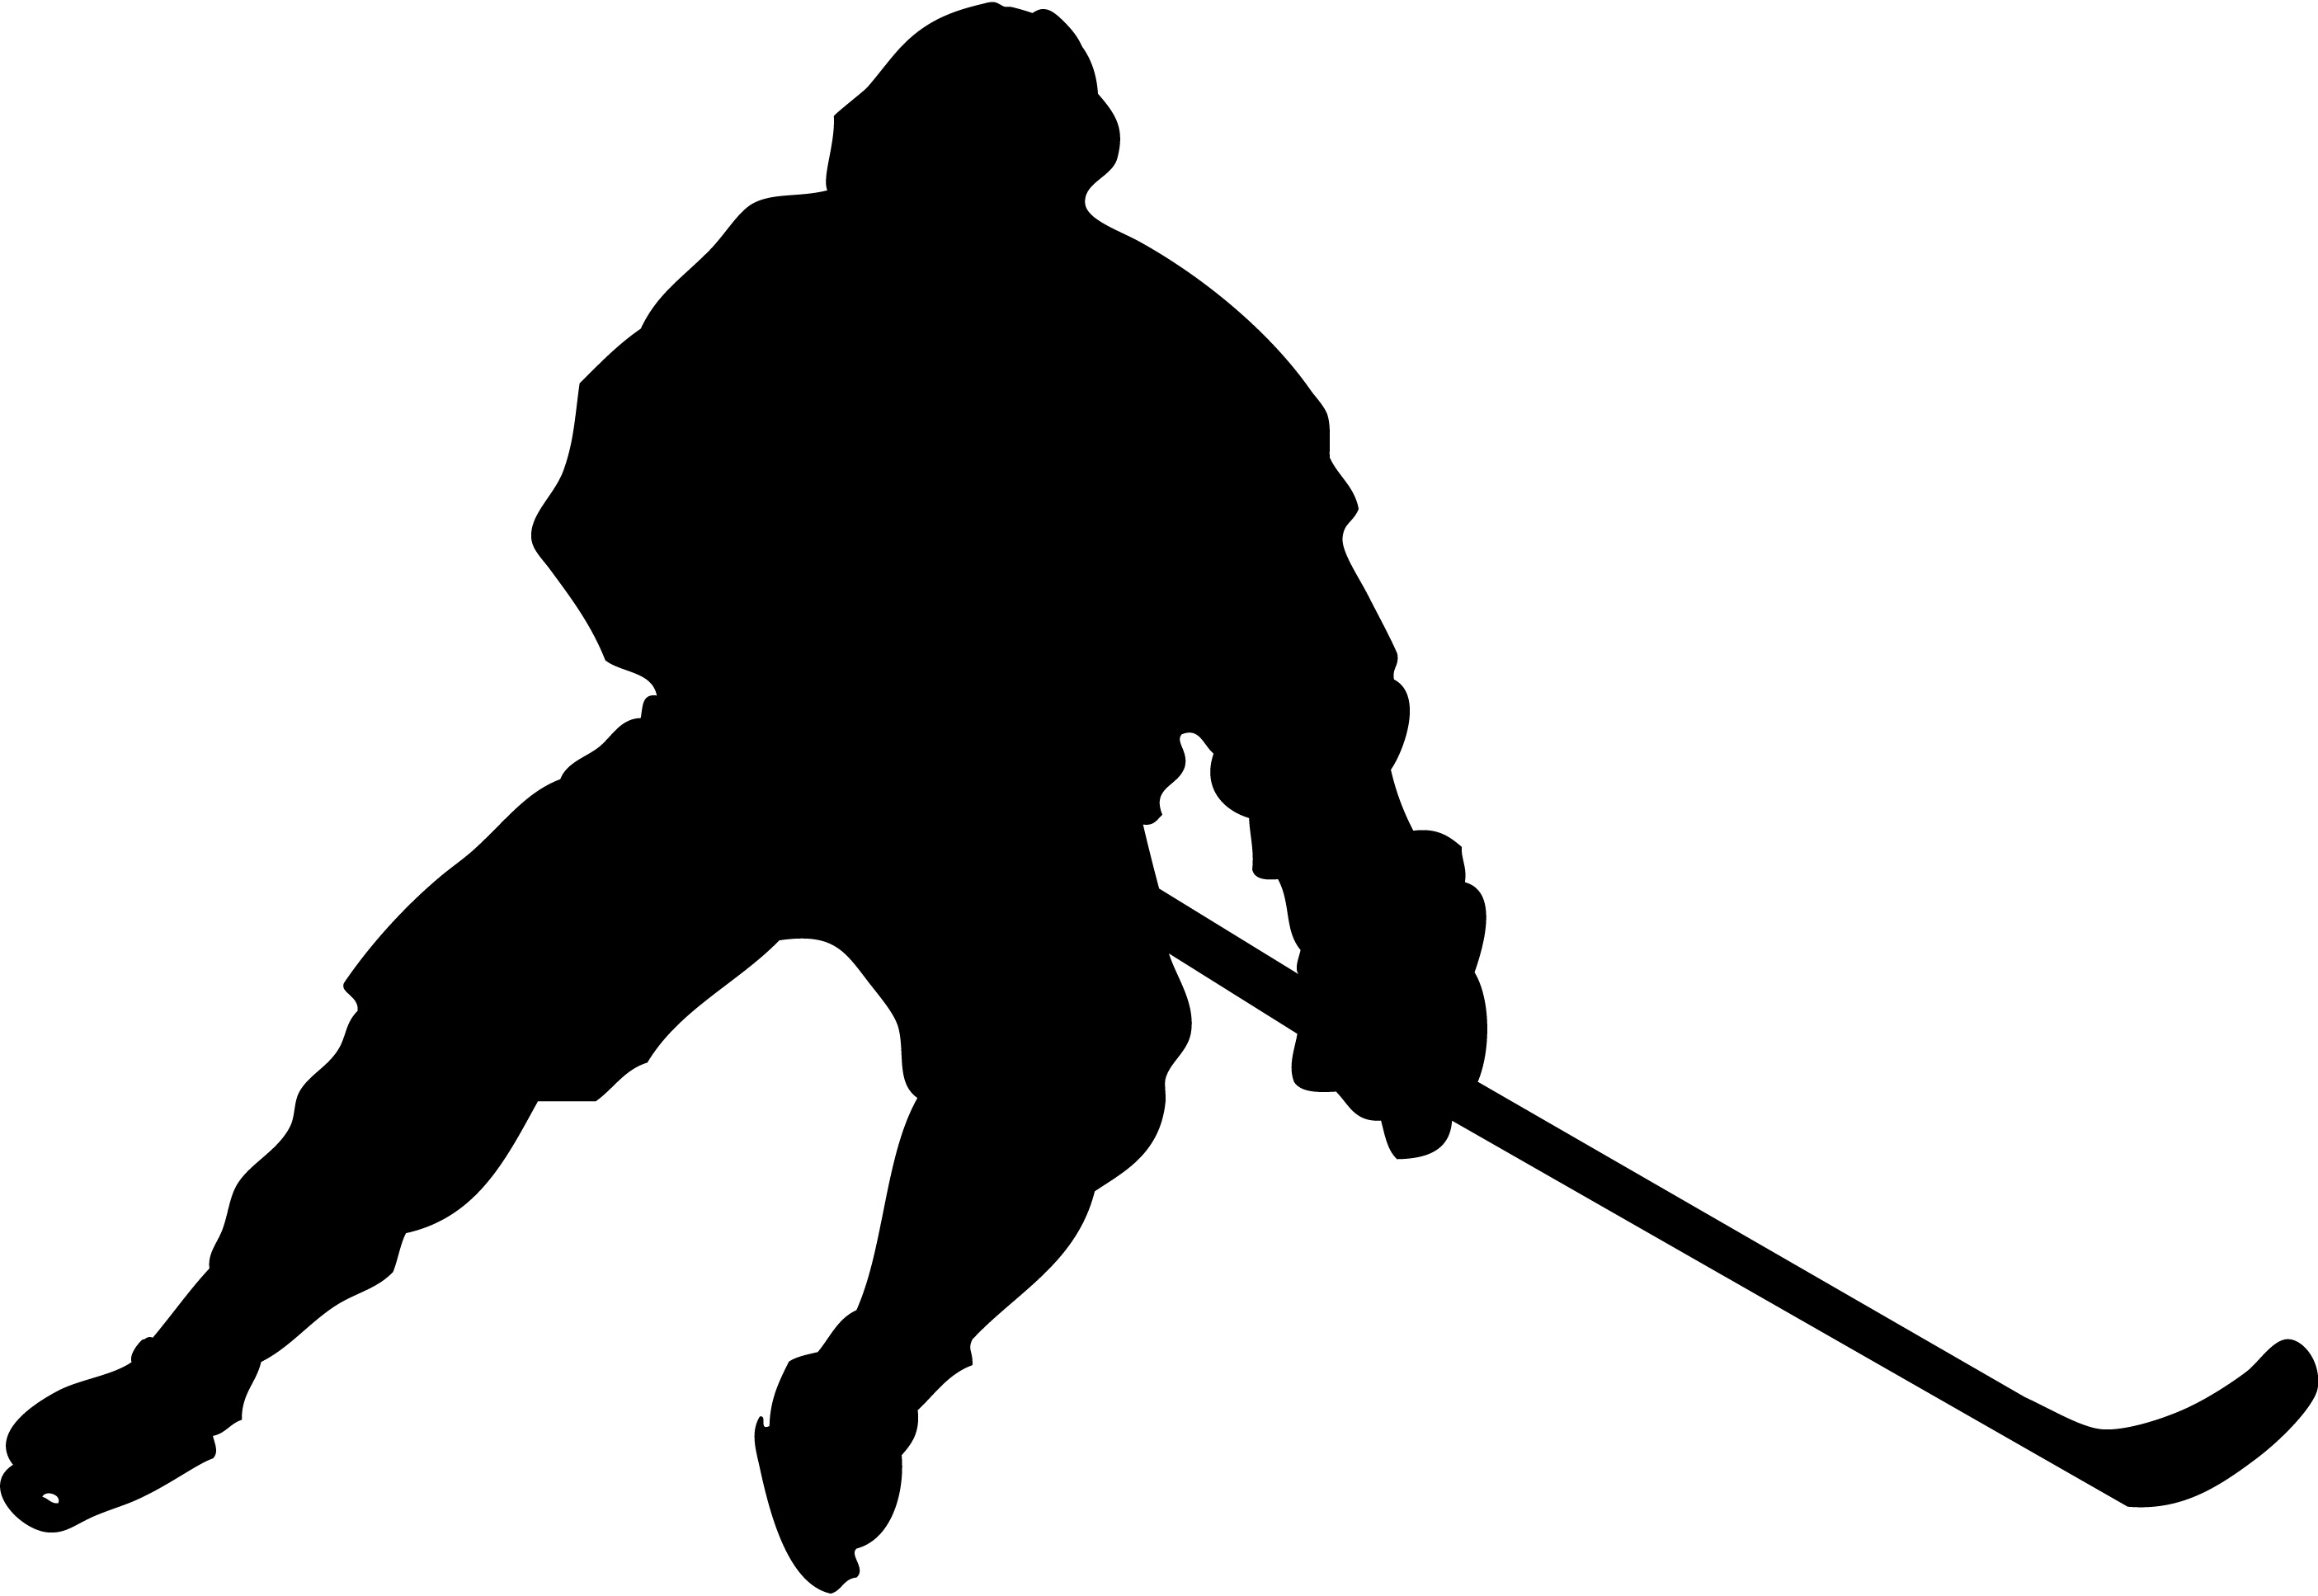 hockey player silhouette clipart best hockey stick clipart small image hockey stick clipart